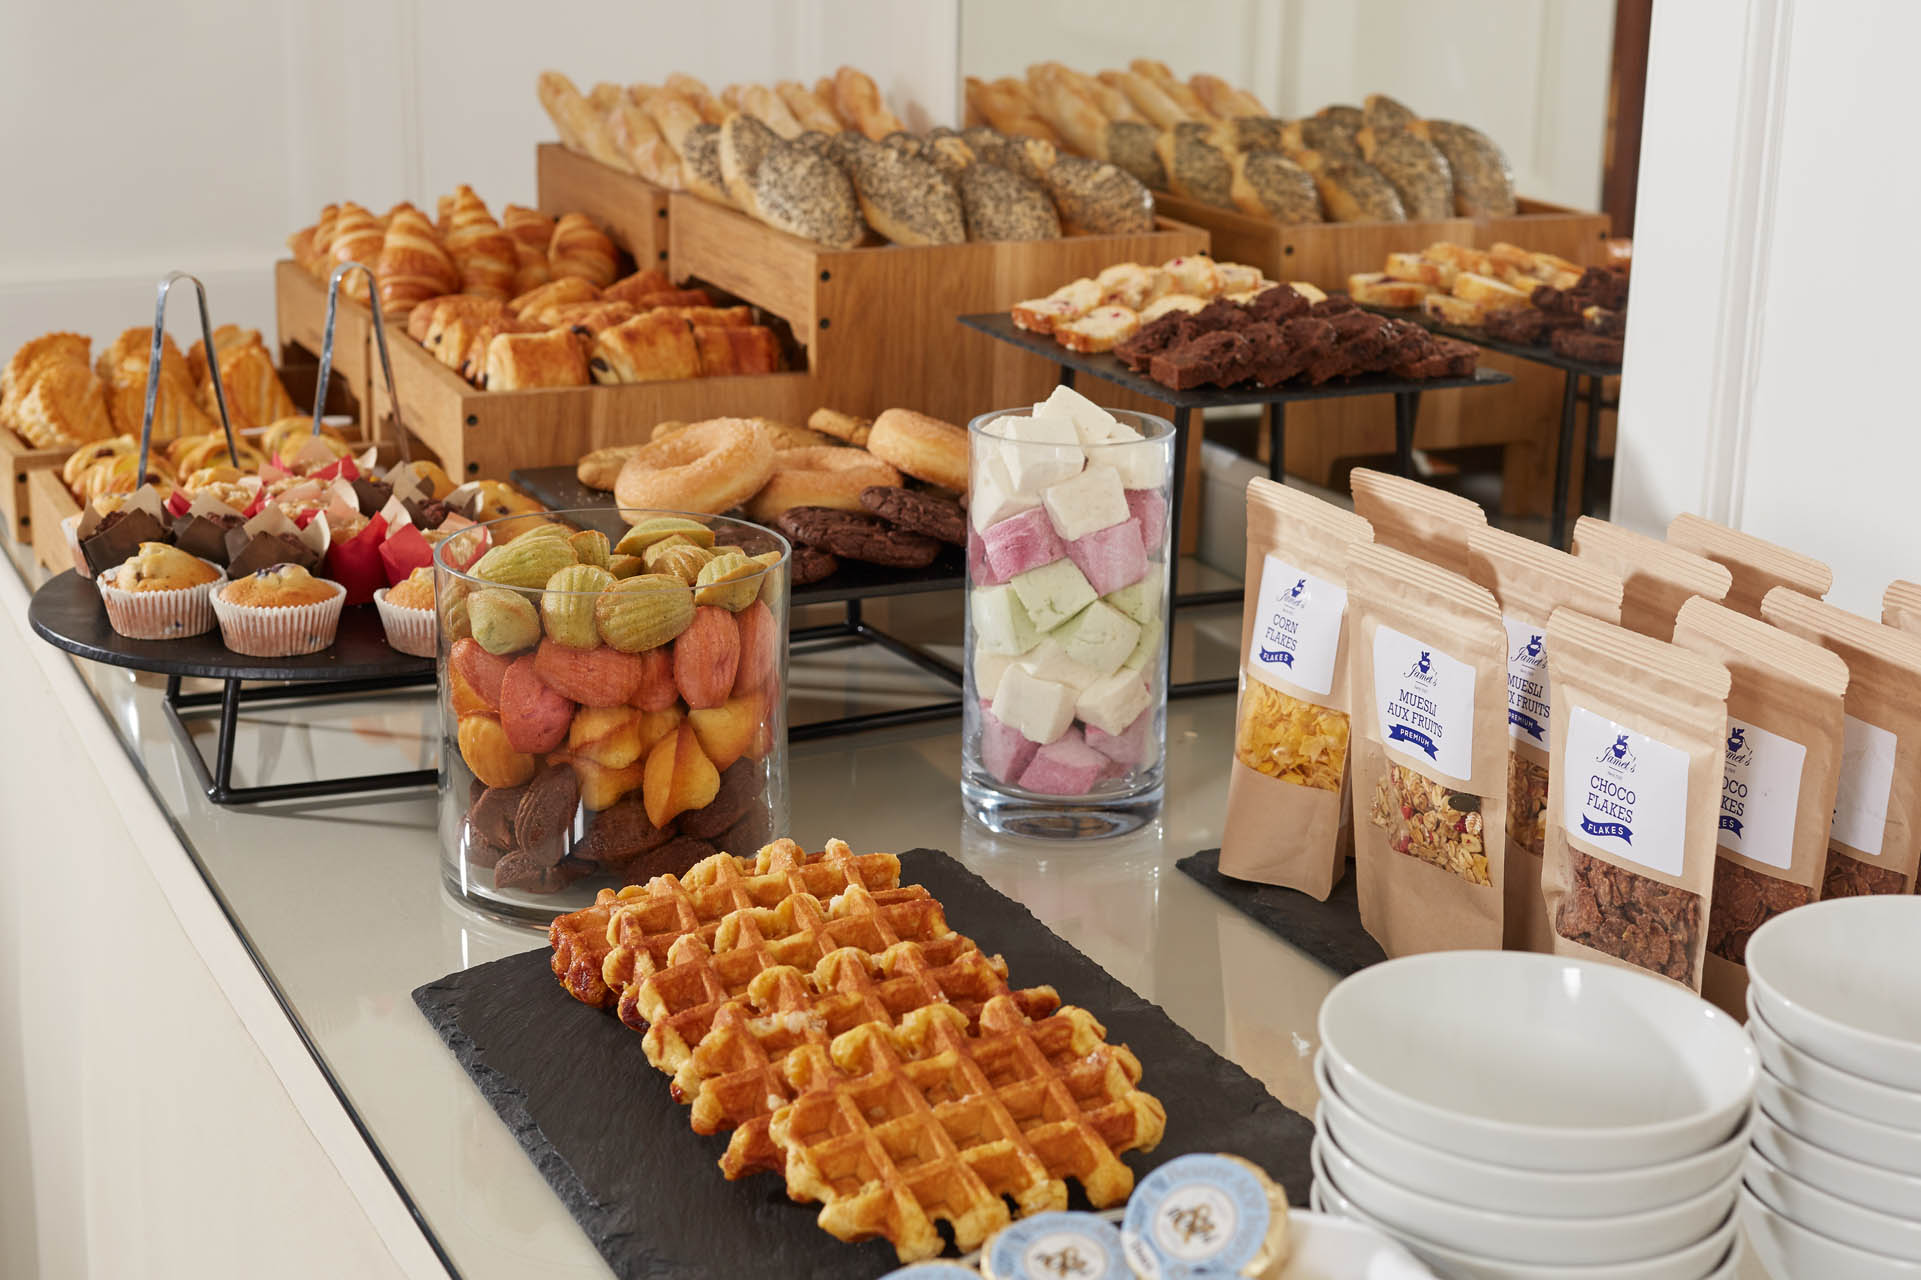 235/Petit dejeuner/Breakfast Room - Buffet 7 - CHotel Regina Paris.jpg